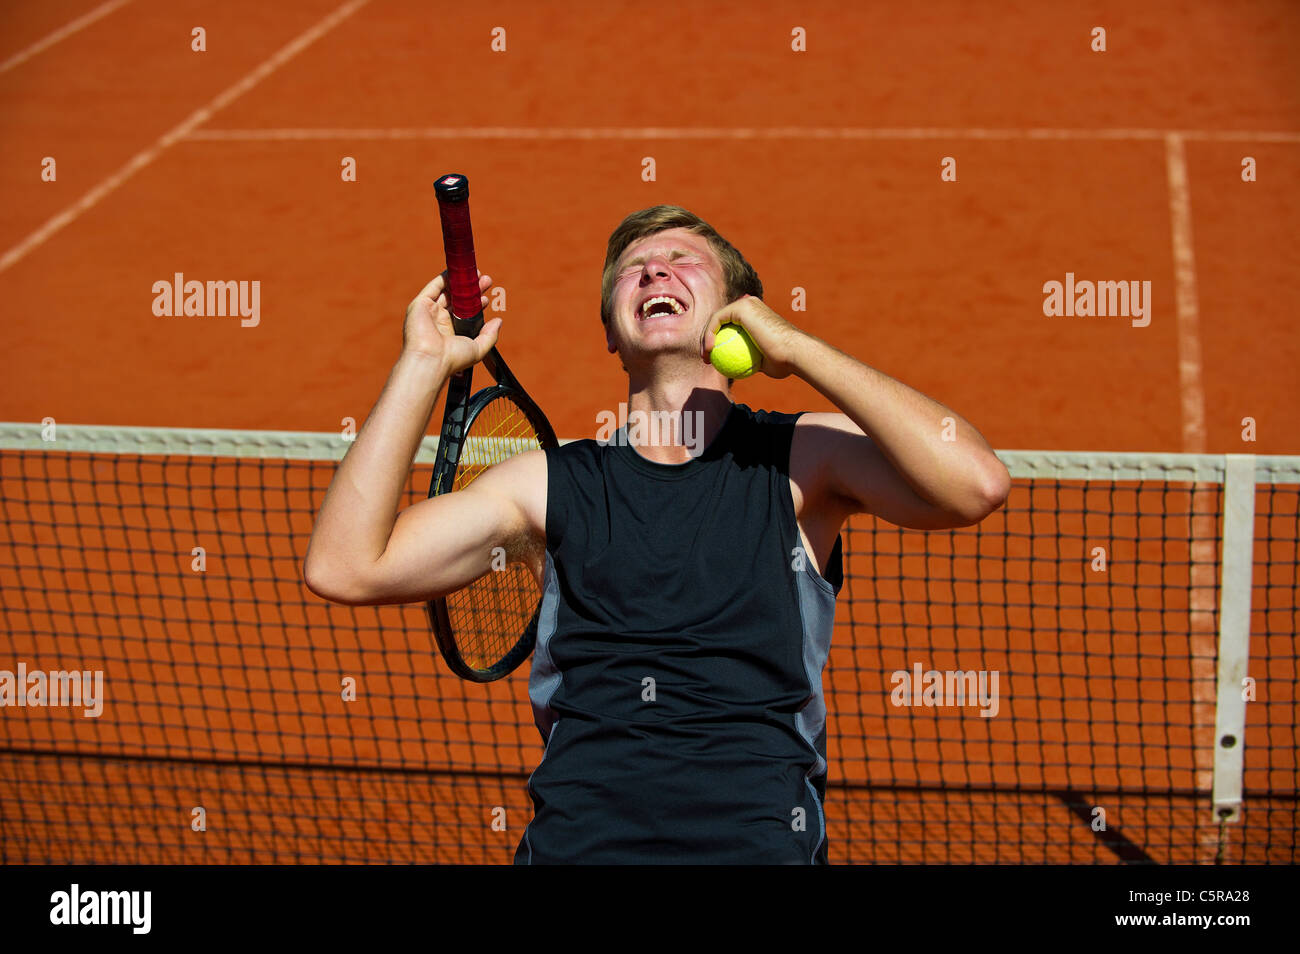 A tennis player celebrates winning the game set and match - Stock Image